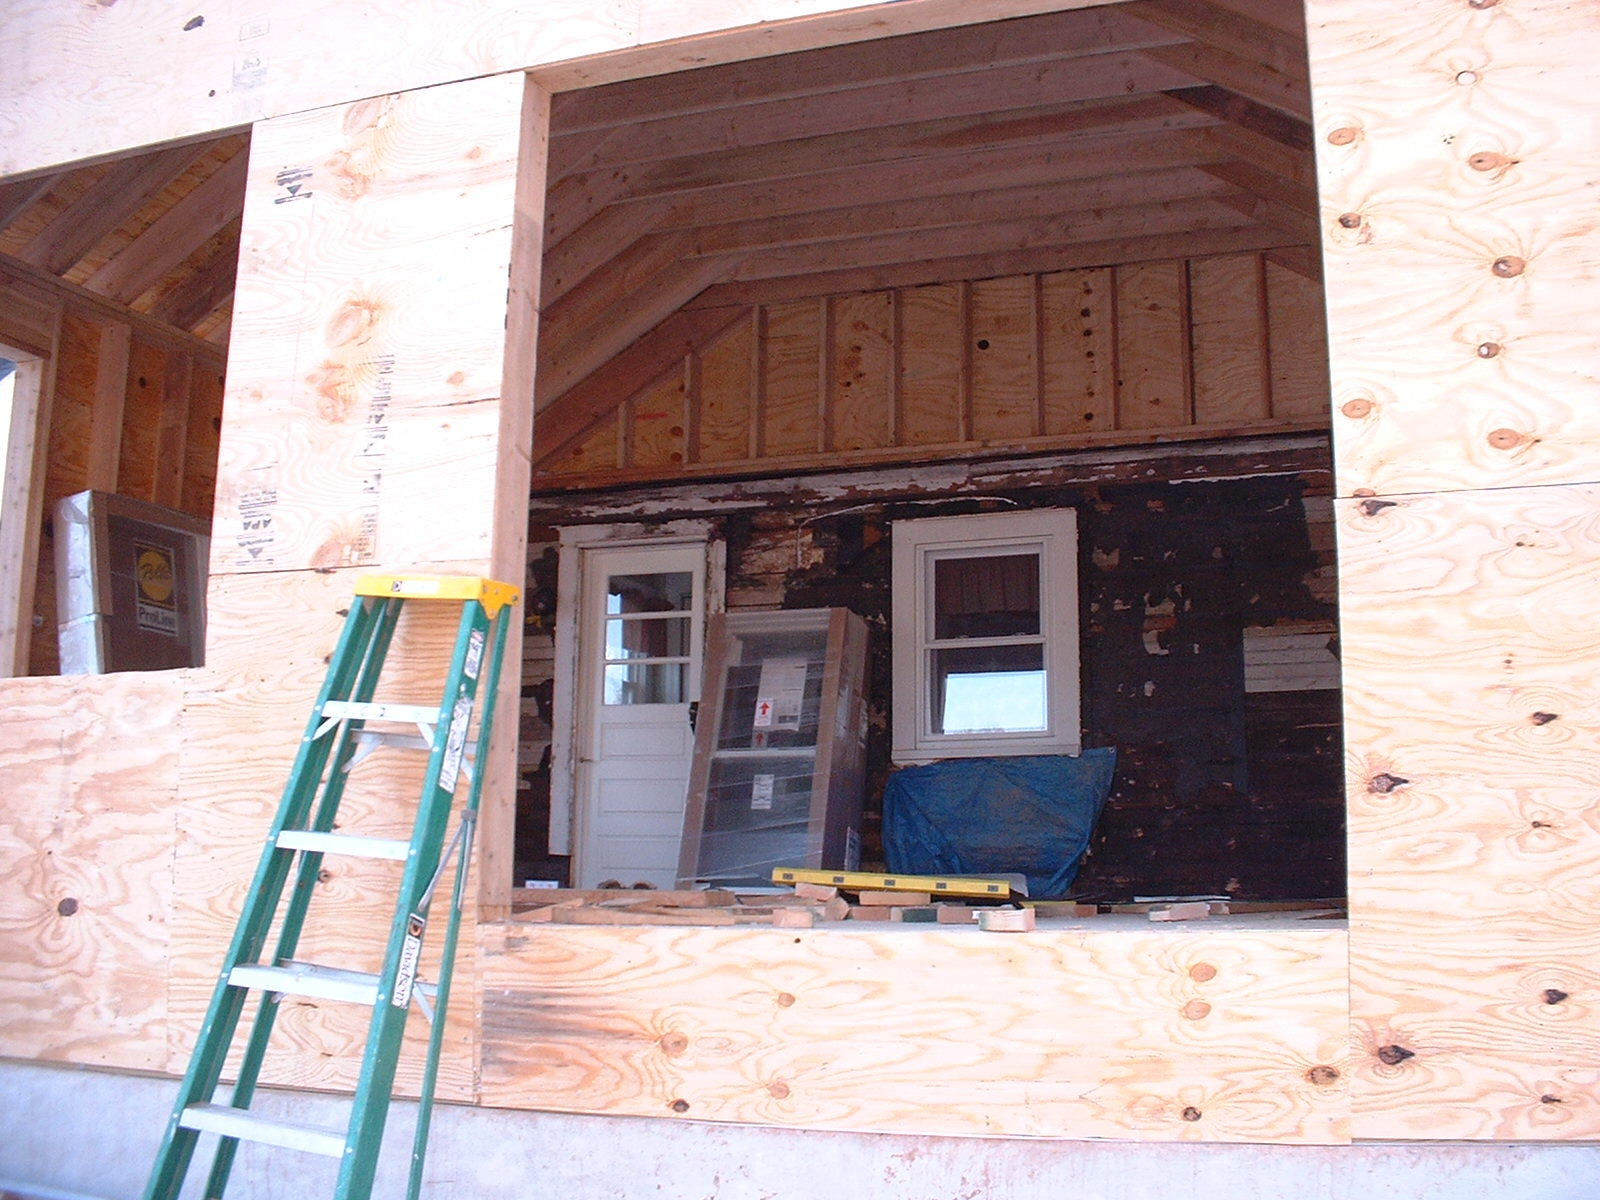 Looking in from the future doorway, you can see the framing inside and the existing wall that will be coming down.